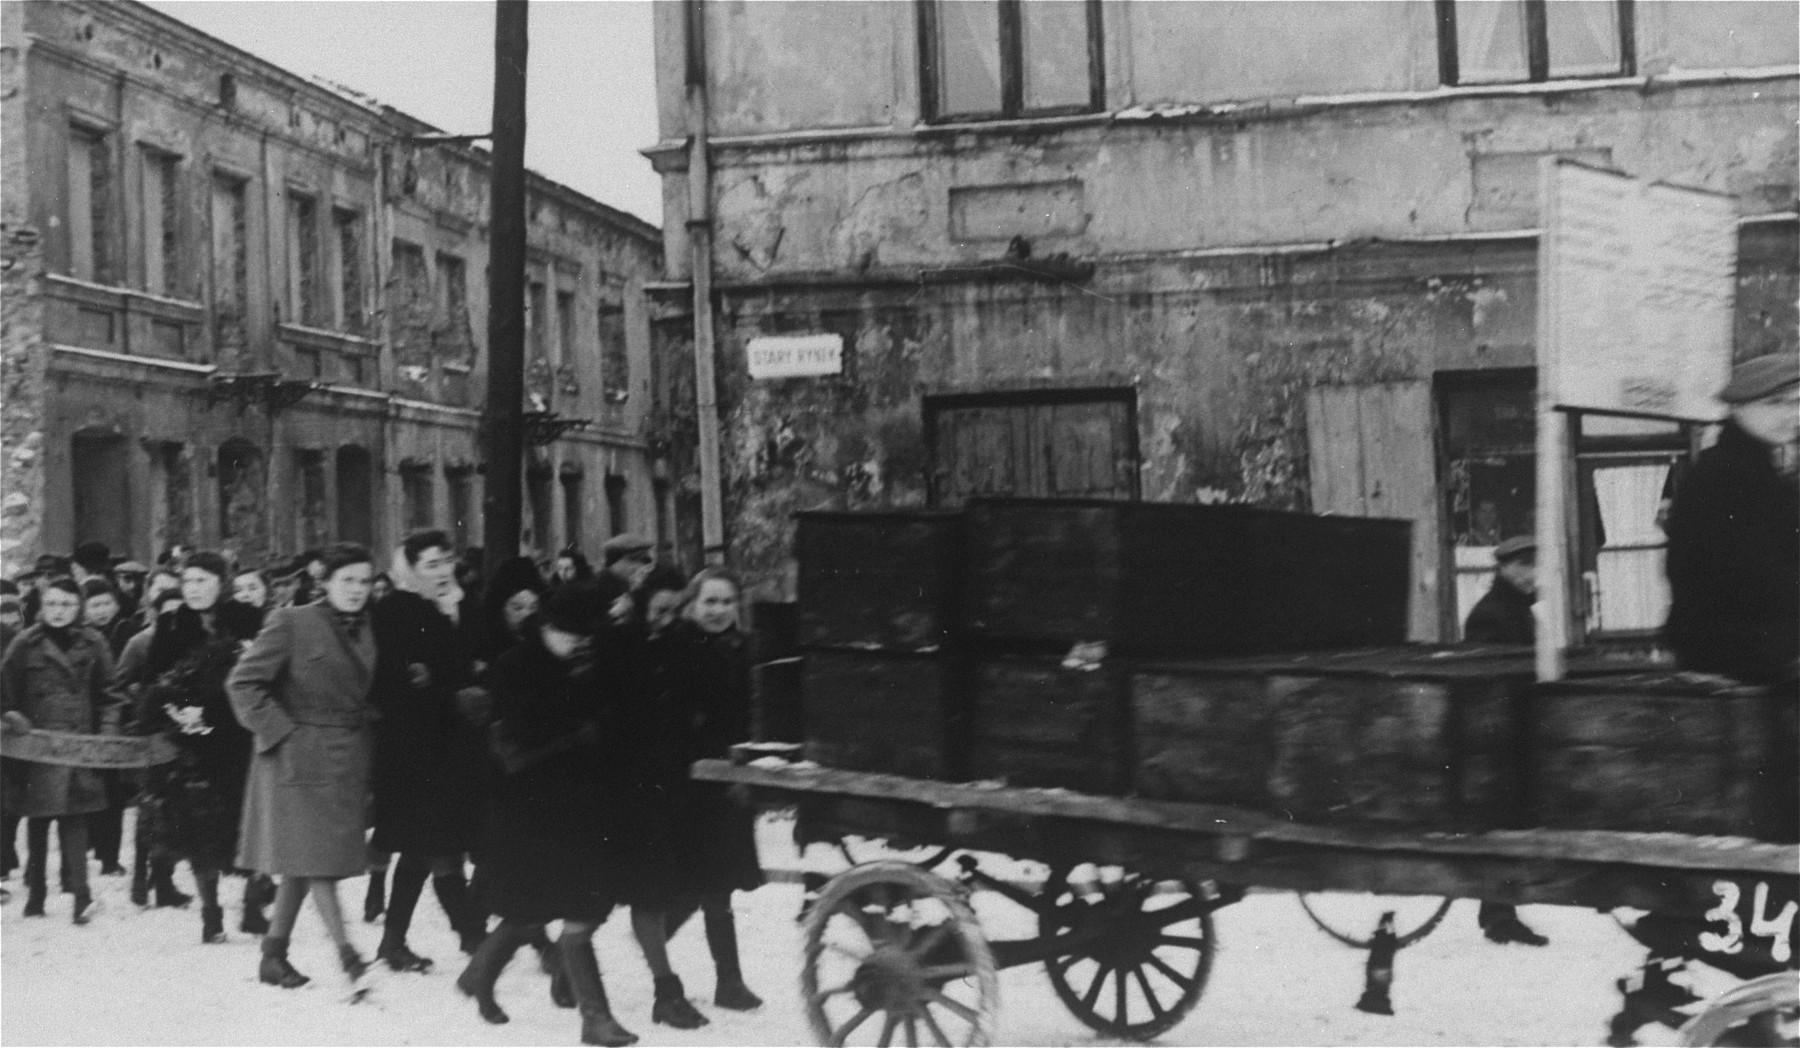 Jewish survivors walk behind a wagon of coffins during a funeral procession  through the snow covered streets of Czestochowa. - Collections Search -  United States Holocaust Memorial Museum